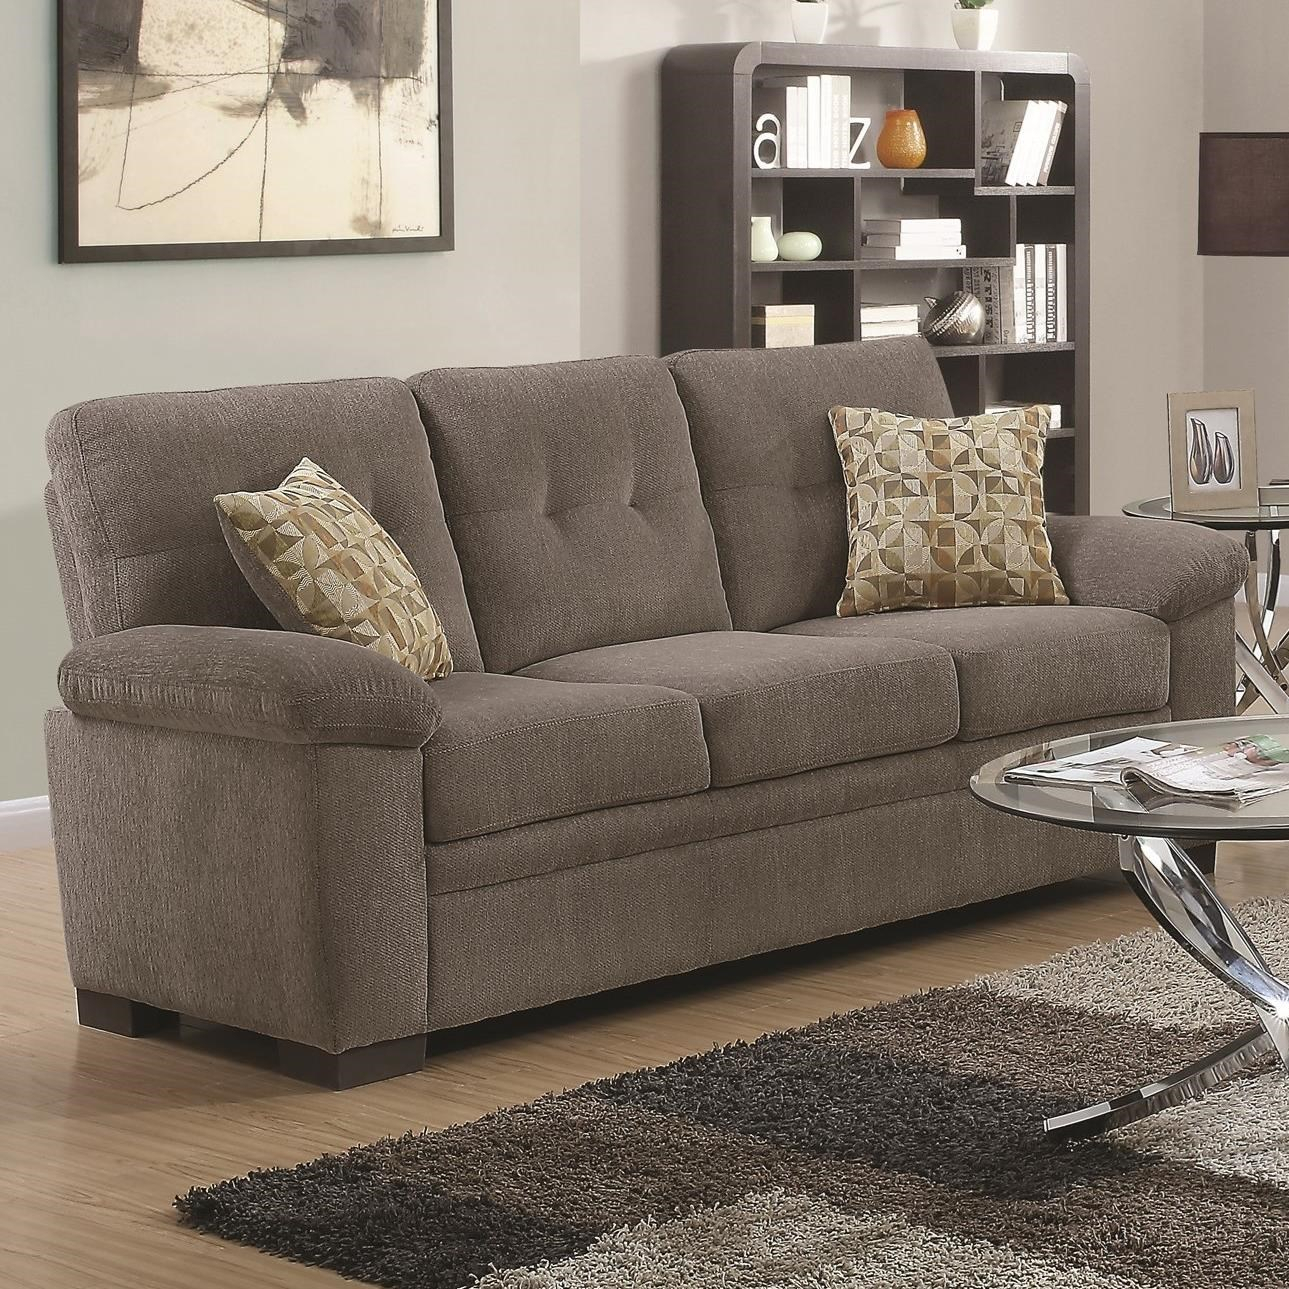 Coaster Fairbairn Sofa With Casual Style | A1 Furniture In Casual Sofas And Chairs (View 6 of 15)